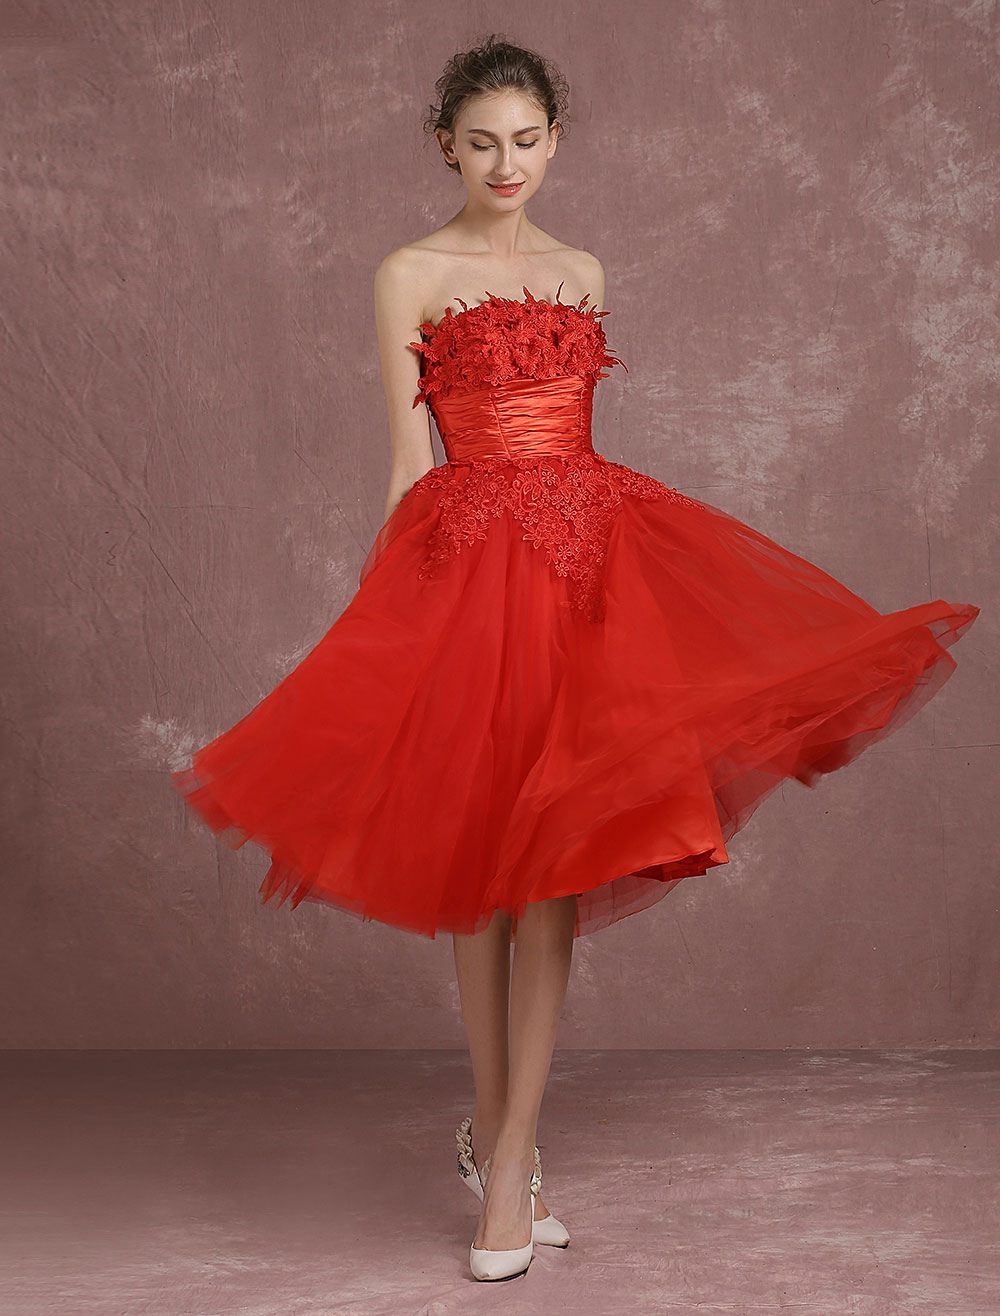 Red Prom Dresses 2018 Short Strapless Backless Cocktail Dress Tulle ...